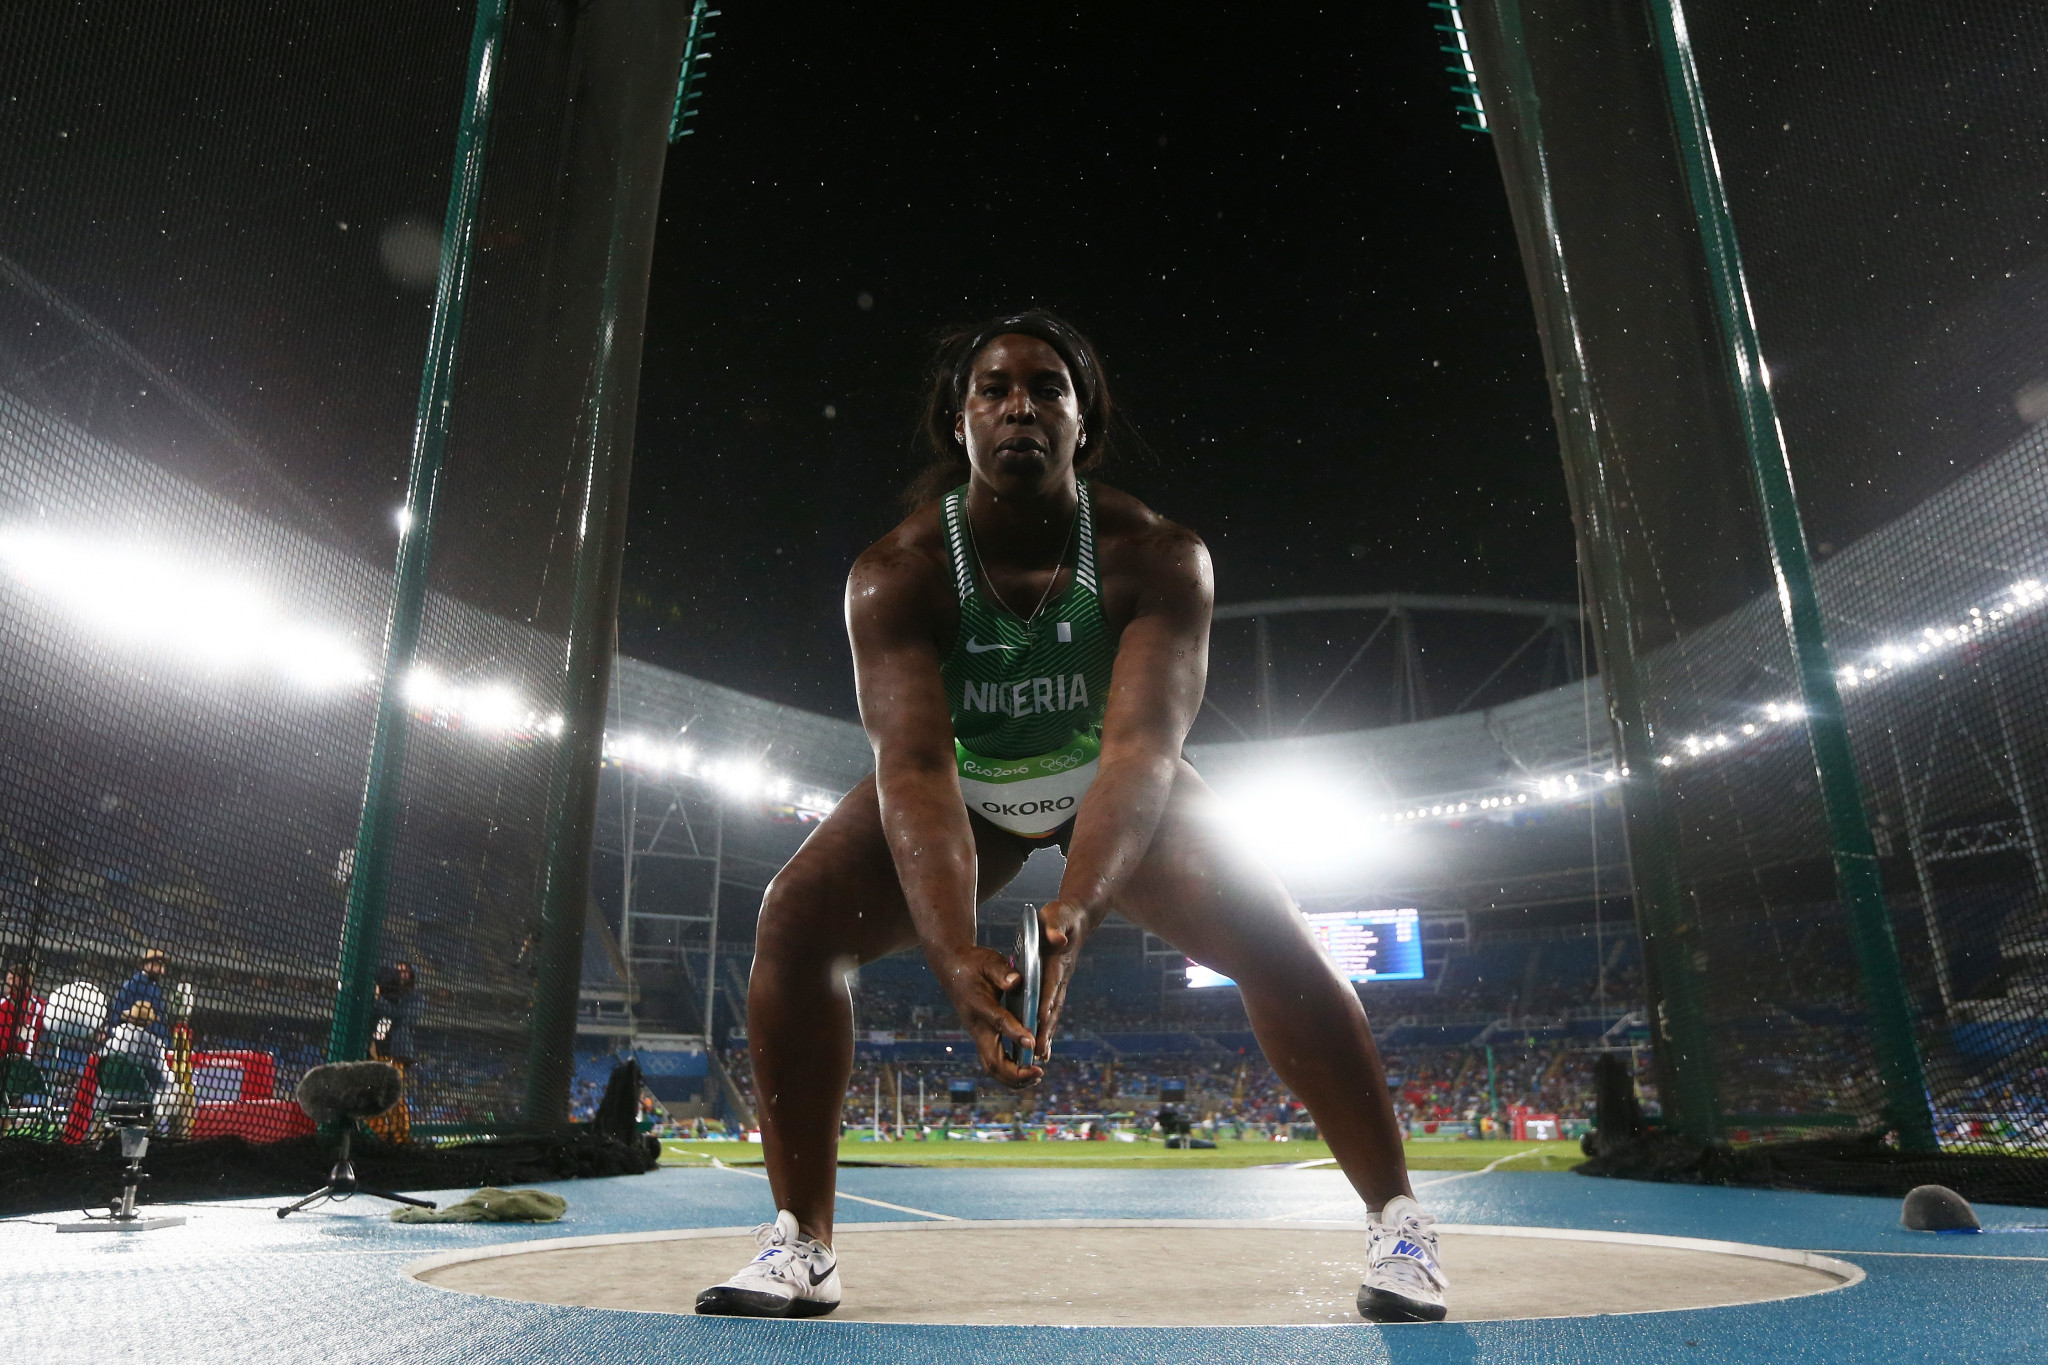 Nigeria's Sports Minister Solomon Dalung had interpreted a warning from the IAAF that the country would be banned if the AFN did not repay money they received in error - a claim denied by the IAAF ©Getty Images